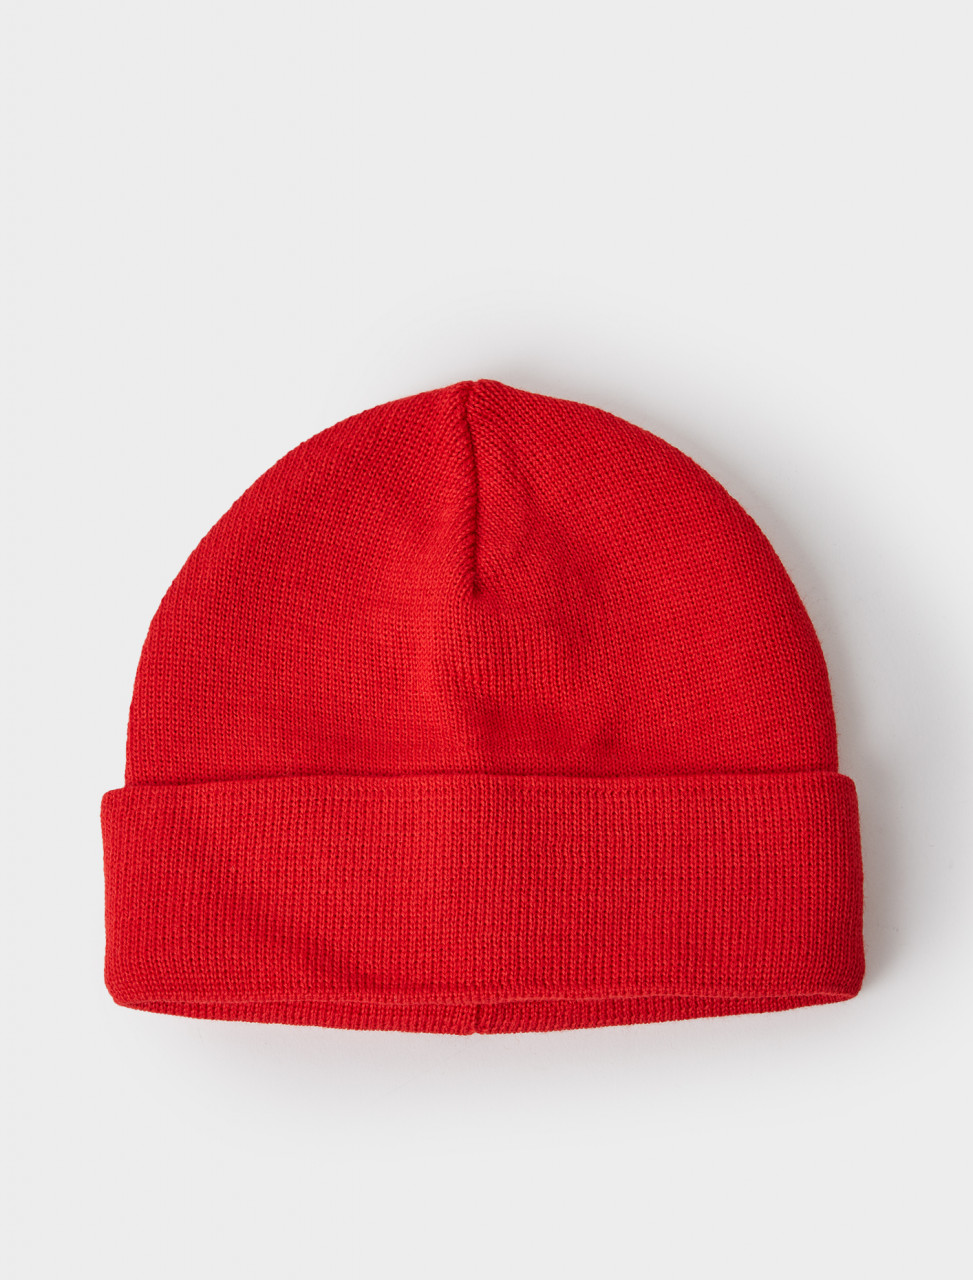 309600 ALASKA WOOL MIX BEANIE RED